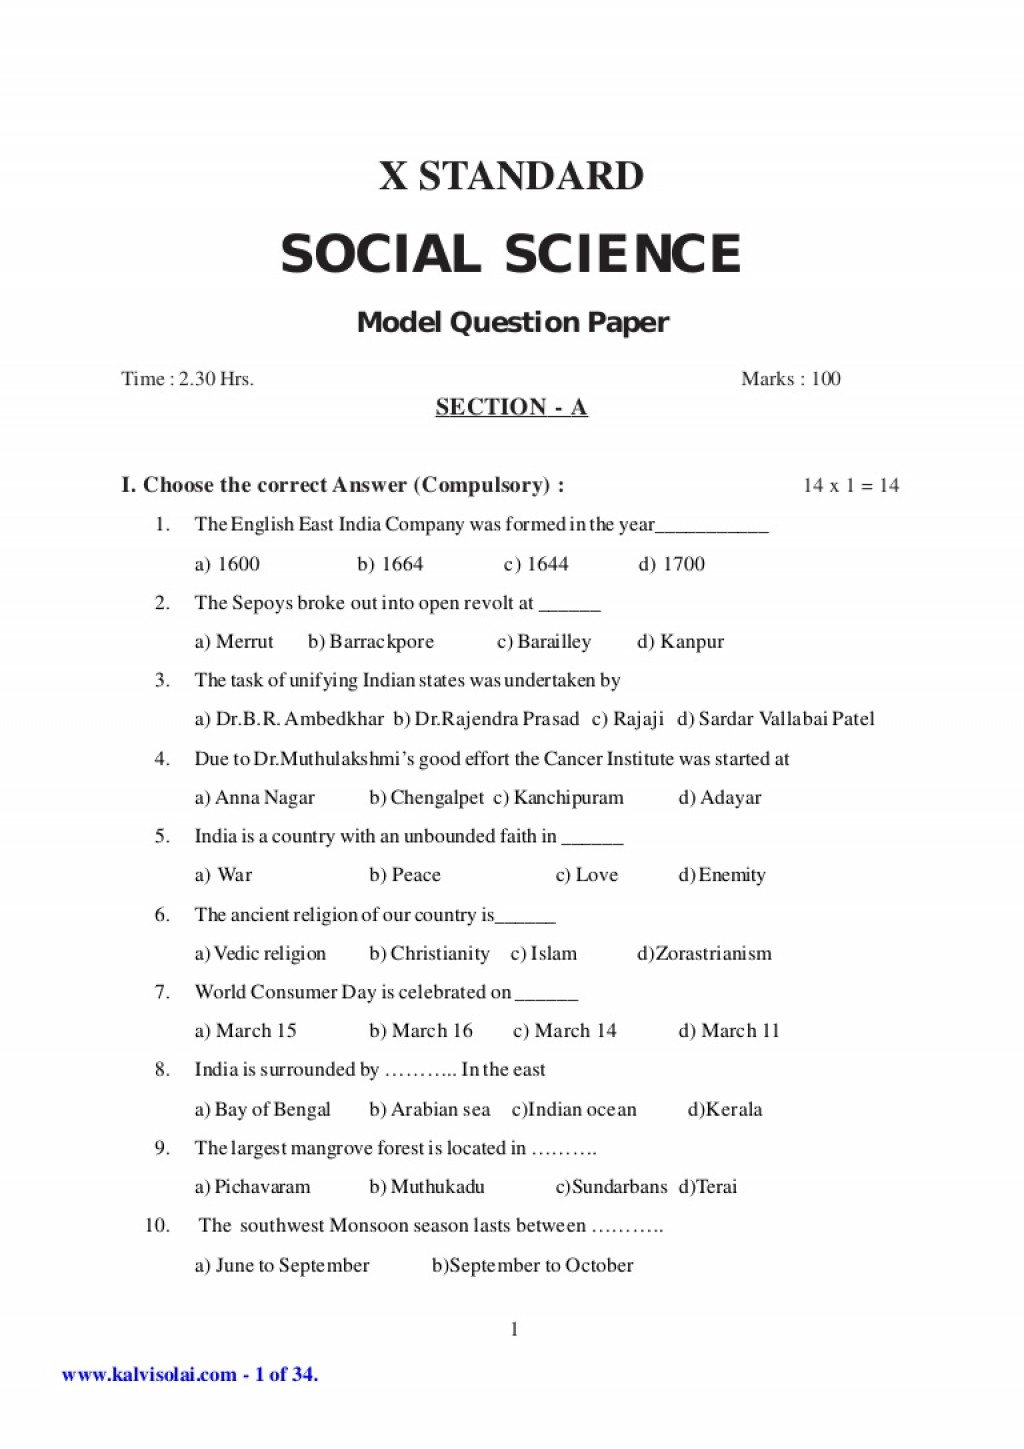 001 Sslc Social Model Question Papers English Medium Phpapp01 Thumbnail Essay Example On Importance Of Rare Science Large